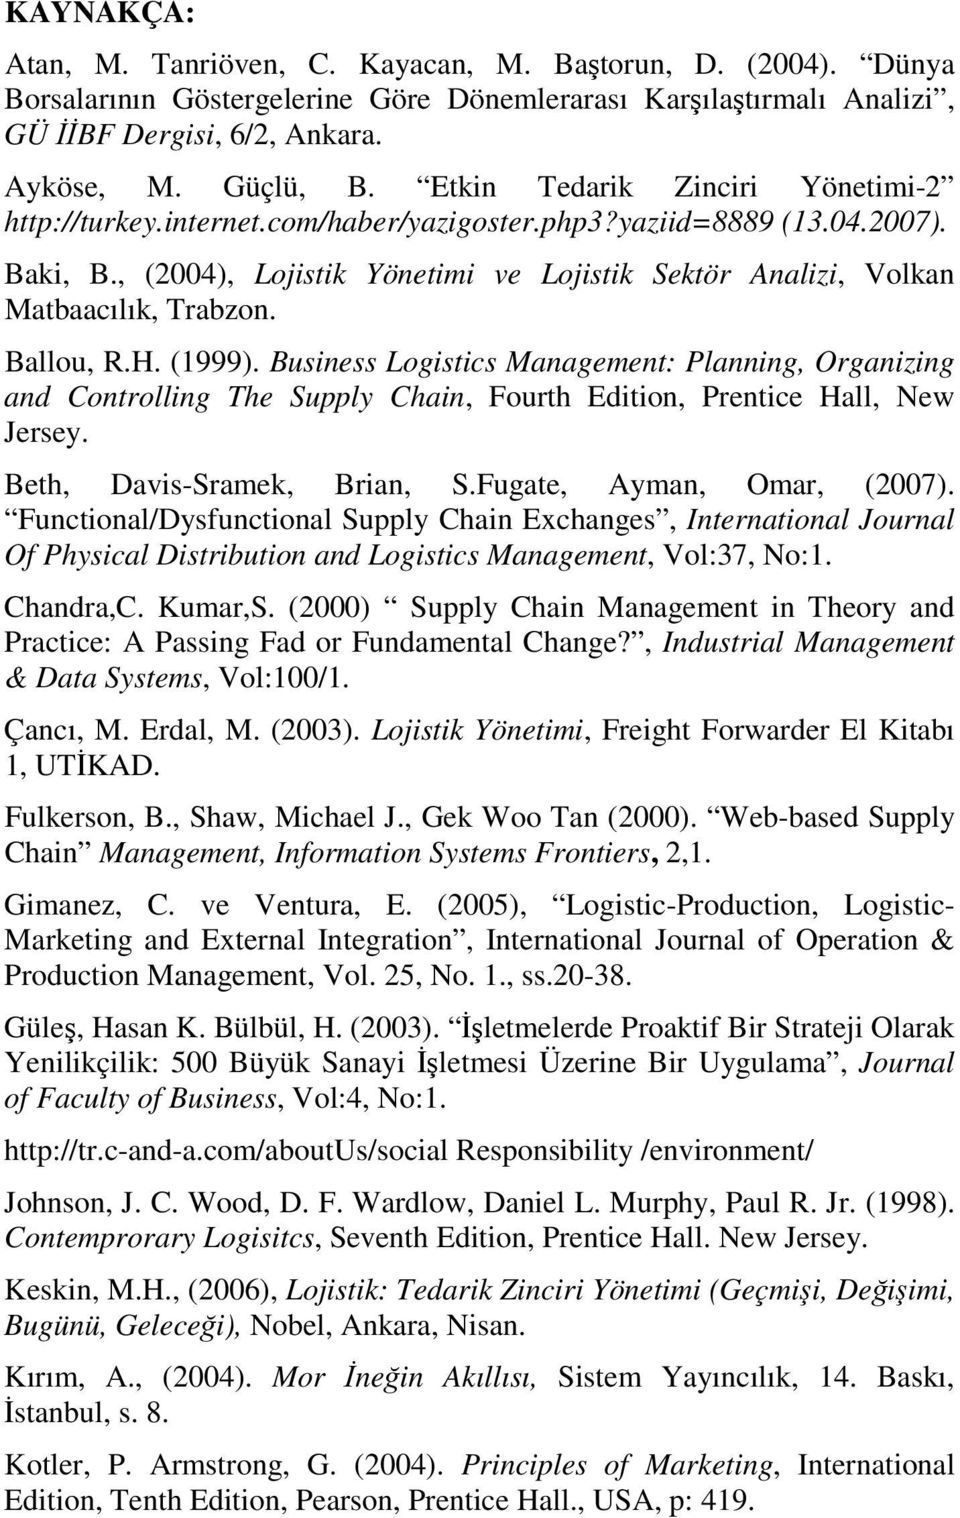 Ballou, R.H. (1999). Business Logistics Management: Planning, Organizing and Controlling The Supply Chain, Fourth Edition, Prentice Hall, New Jersey. Beth, Davis-Sramek, Brian, S.